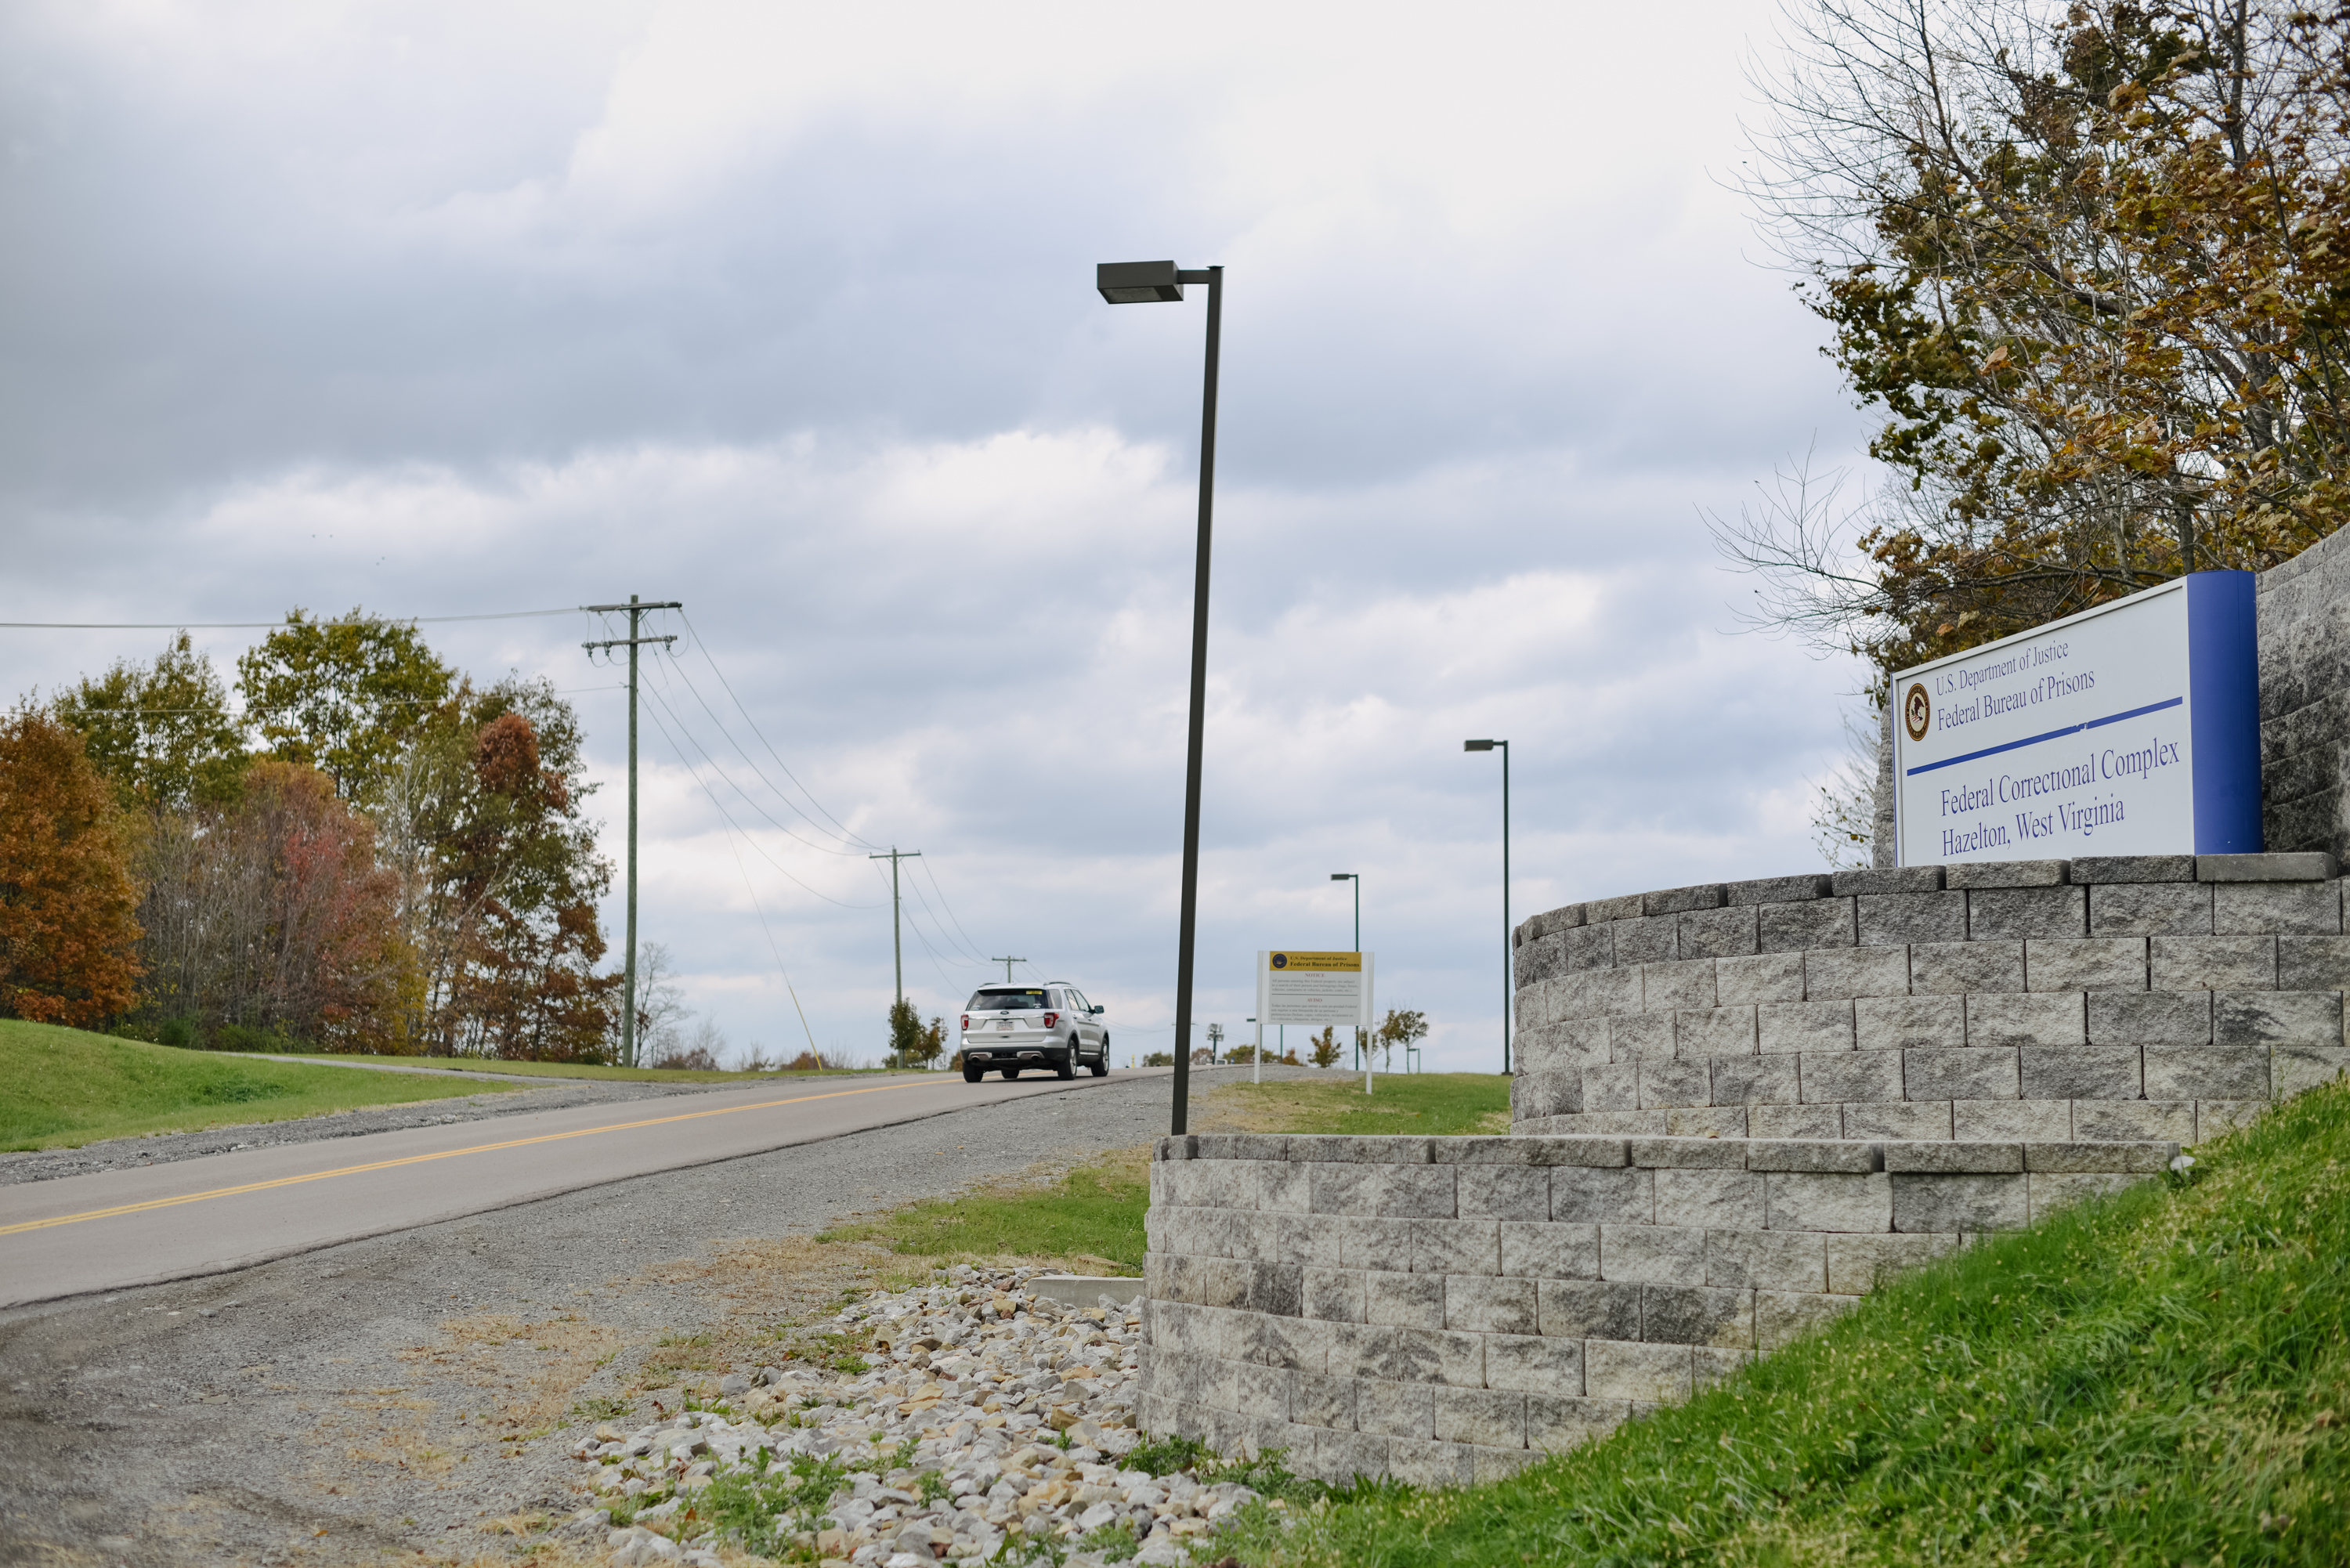 Hazelton inmates were known to use locks as weapons  Some